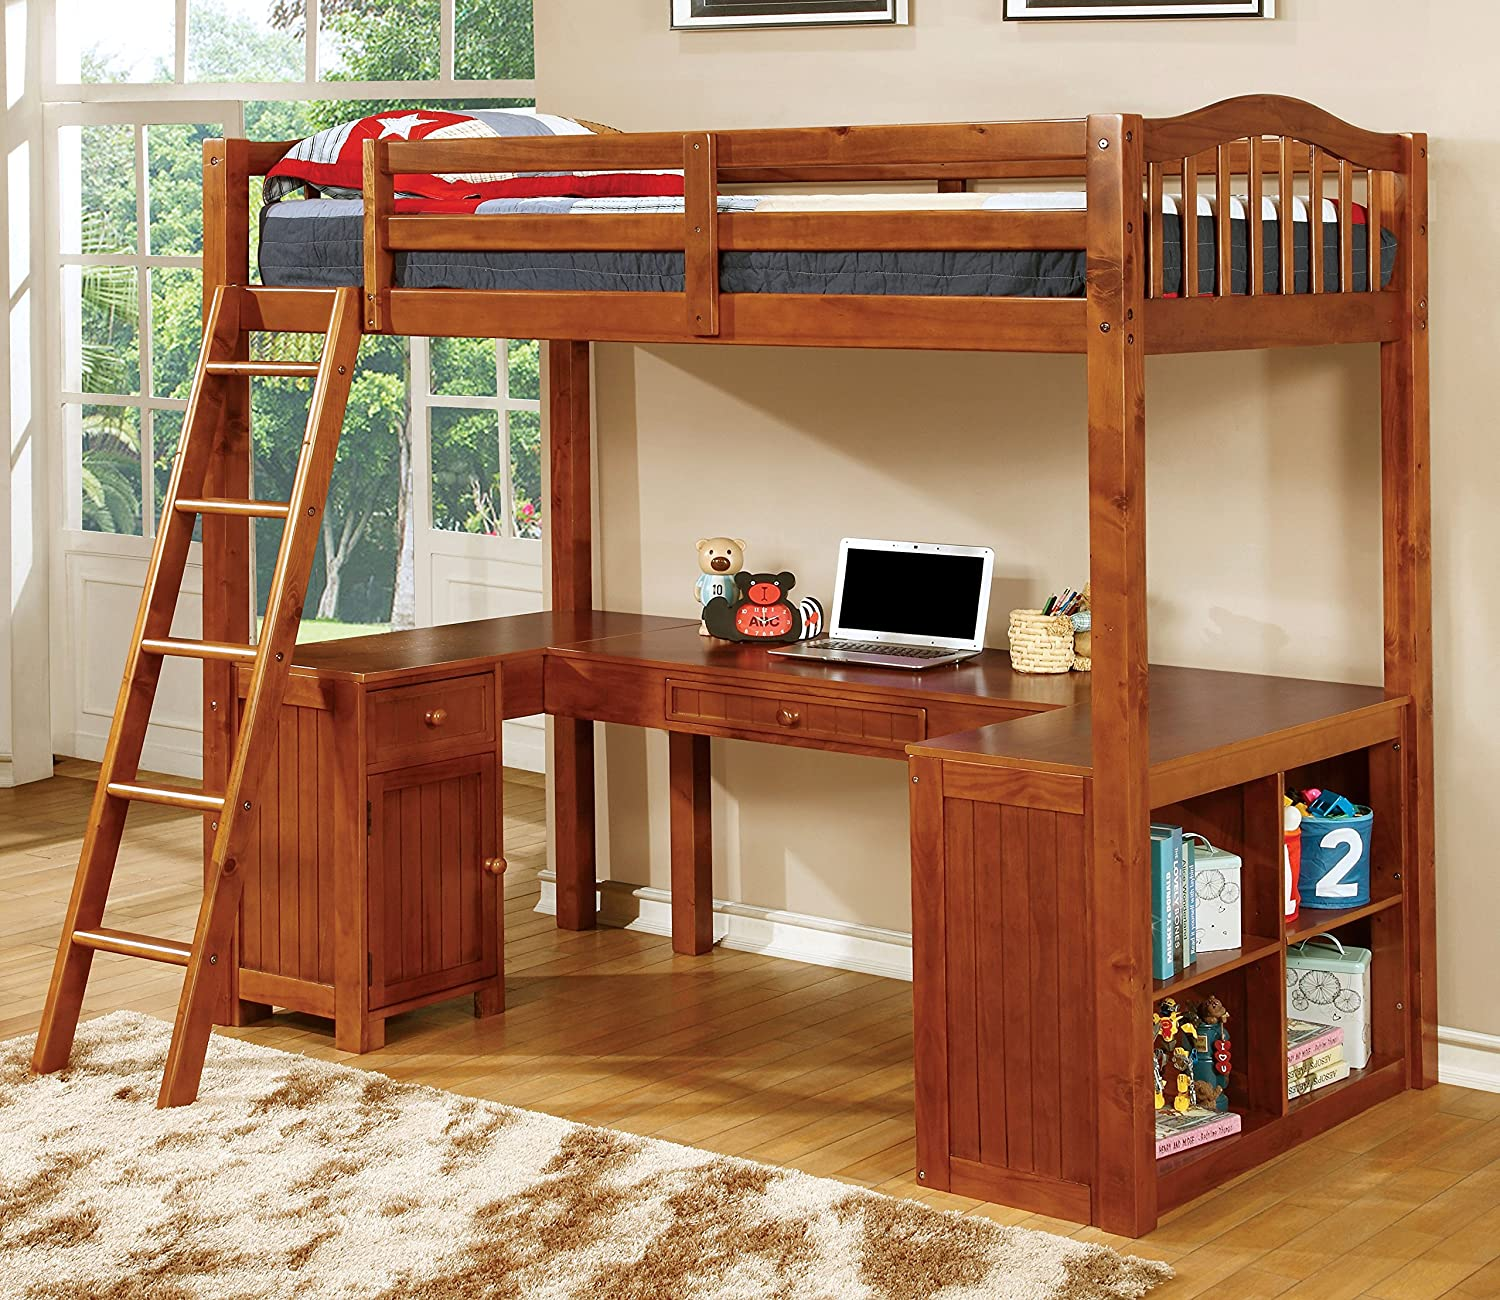 them combo storage drawers walmart design and plans bunk stairs under furniture loft desk desks beds free over with fine futon bunks coaster wardrobes twin closet bed chair